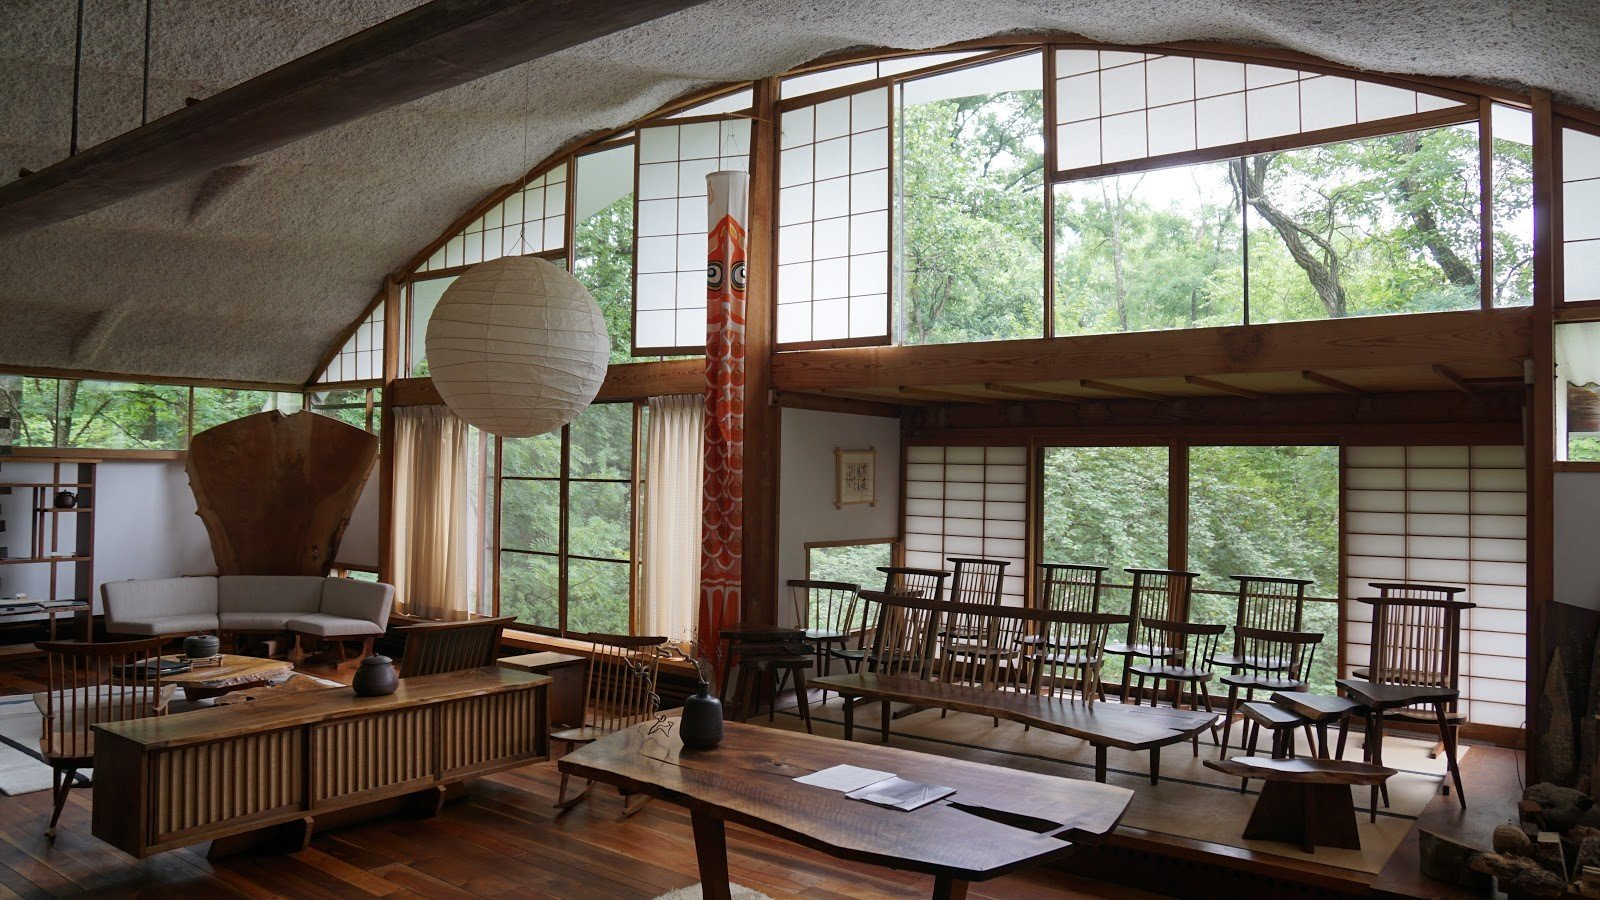 The interior of the Conoid Studio.